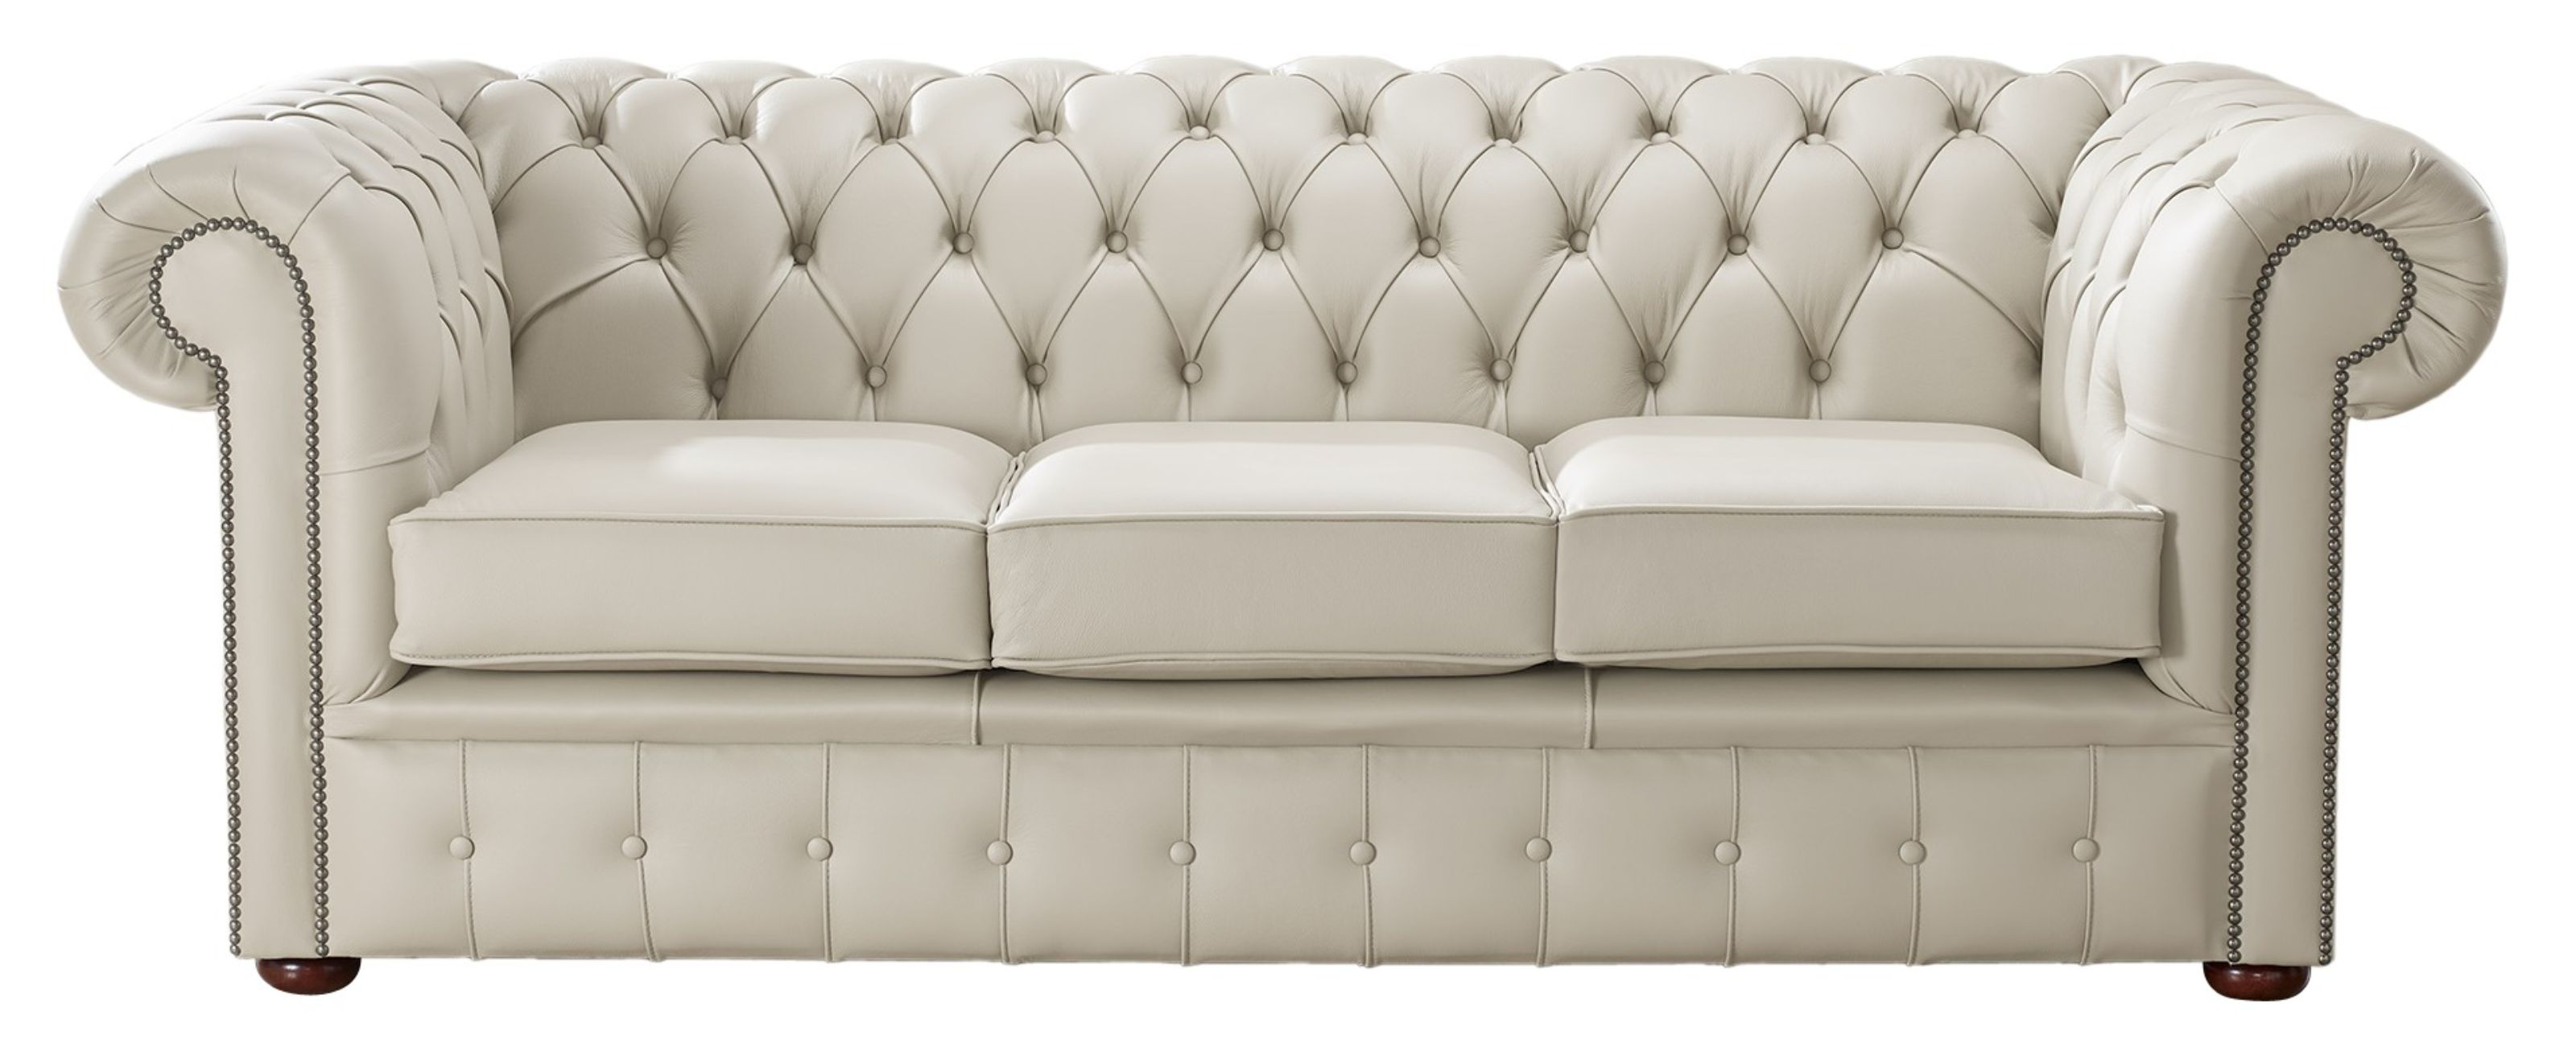 Picture of: Beige Leather Chesterfield 3 Seater Sofa Designersofas4u